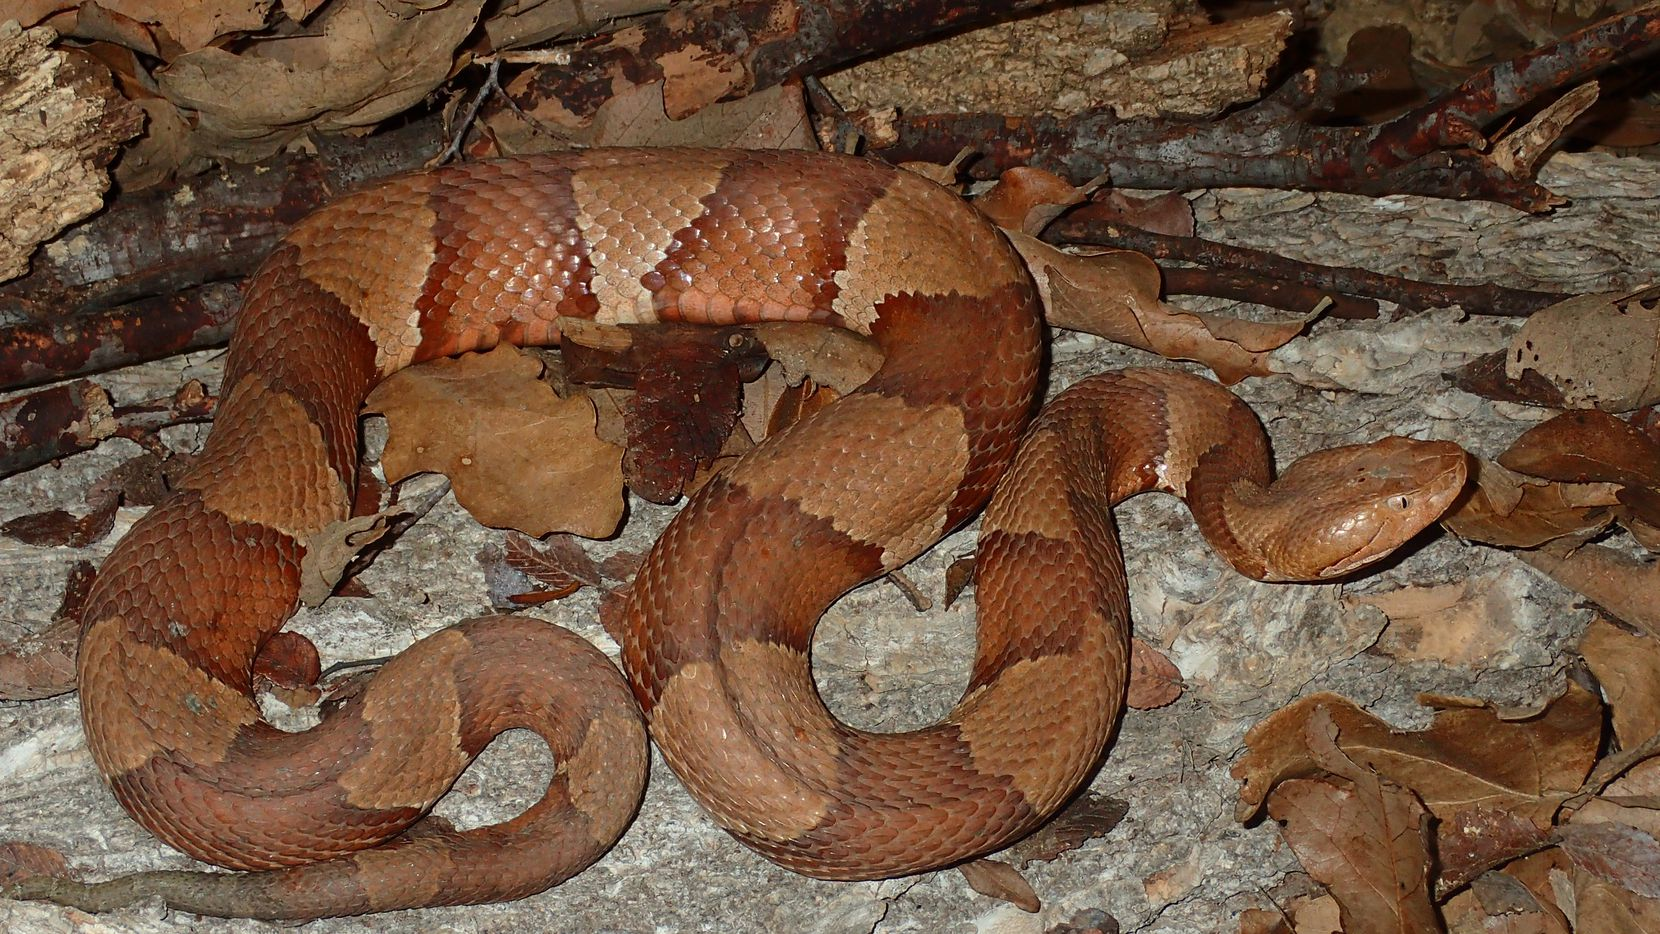 Snakes of Texas: Copperheads, with their flashy banded pattern and tawny coloring, may be among the most easily identifiable snakes in Texas.  They re common in North Texas, particularly along streams and rivers. They generally grow to about 2 to 3 feet long. In Dallas County, the broad-banded copperheads are more common in the western areas and the lighter-skinned, southern copperheads are more common in the eastern sections. Photo: Carl J. Franklin, biological curator of the Amphibian and Reptile Diversity Research Center at UT Arlington.